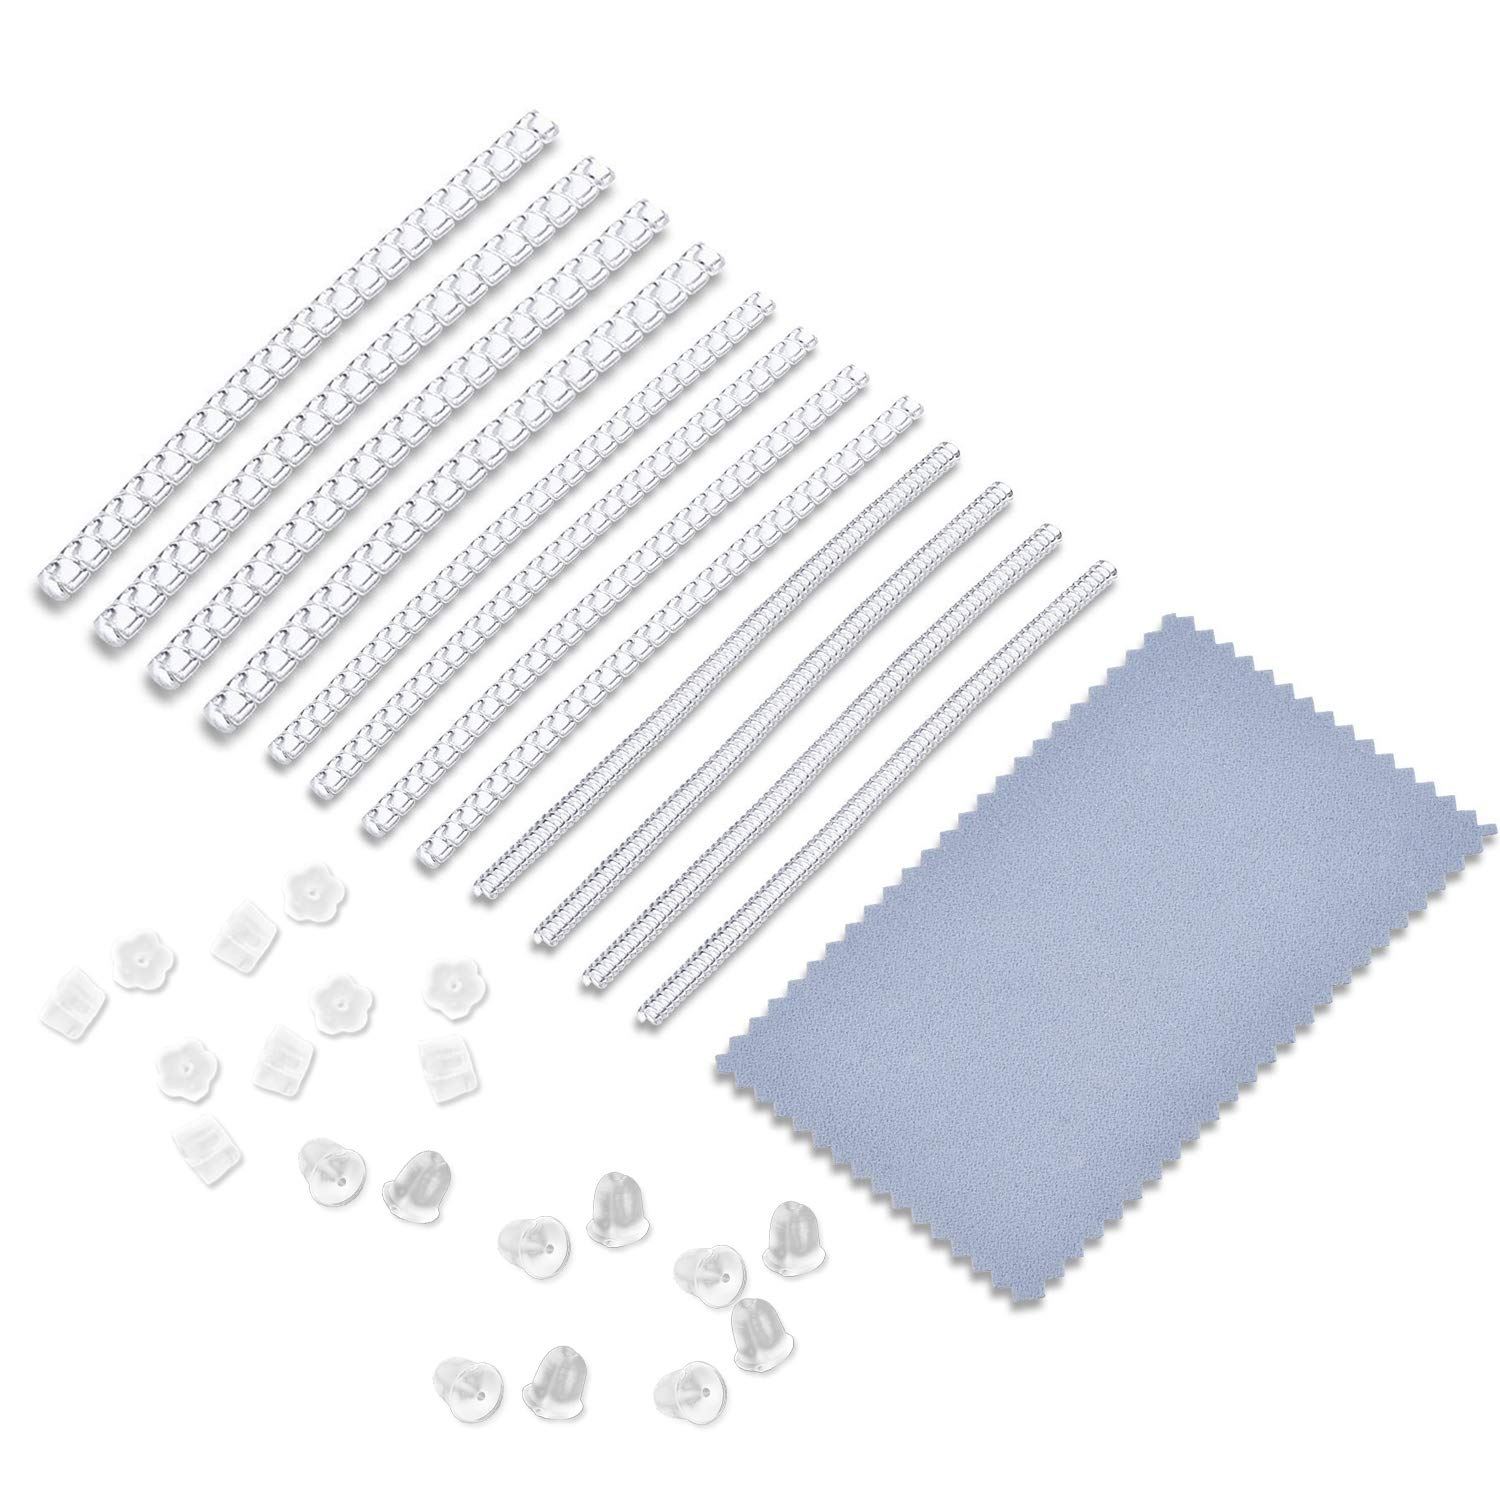 Ring Size Adjuster 3 Sizes Clear Ring Sizer for Any Loose Rings, Perfect for Wedding Rings, Earring Safety Back and 12 Pcs Sizer (2mm/3mm/4mm) Piokio 4336825679